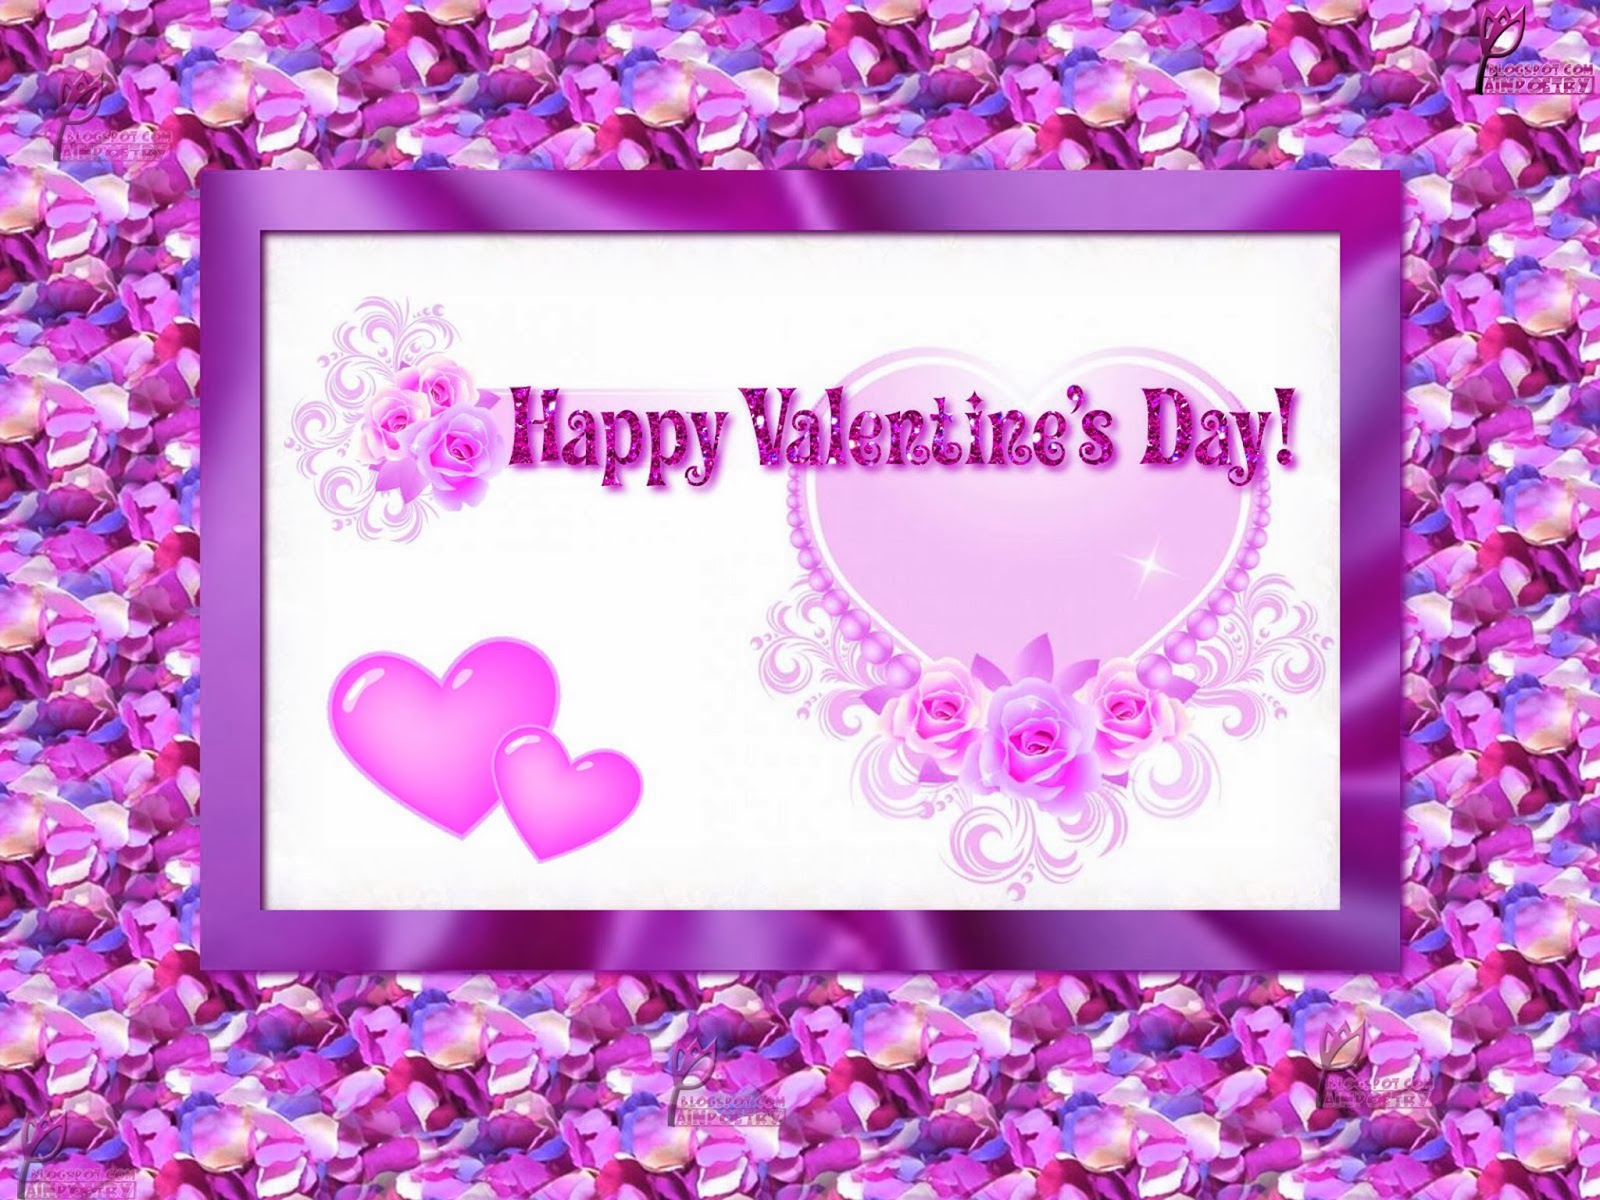 Valentines Day Wishes Image Wallpaper Photo HD Wide